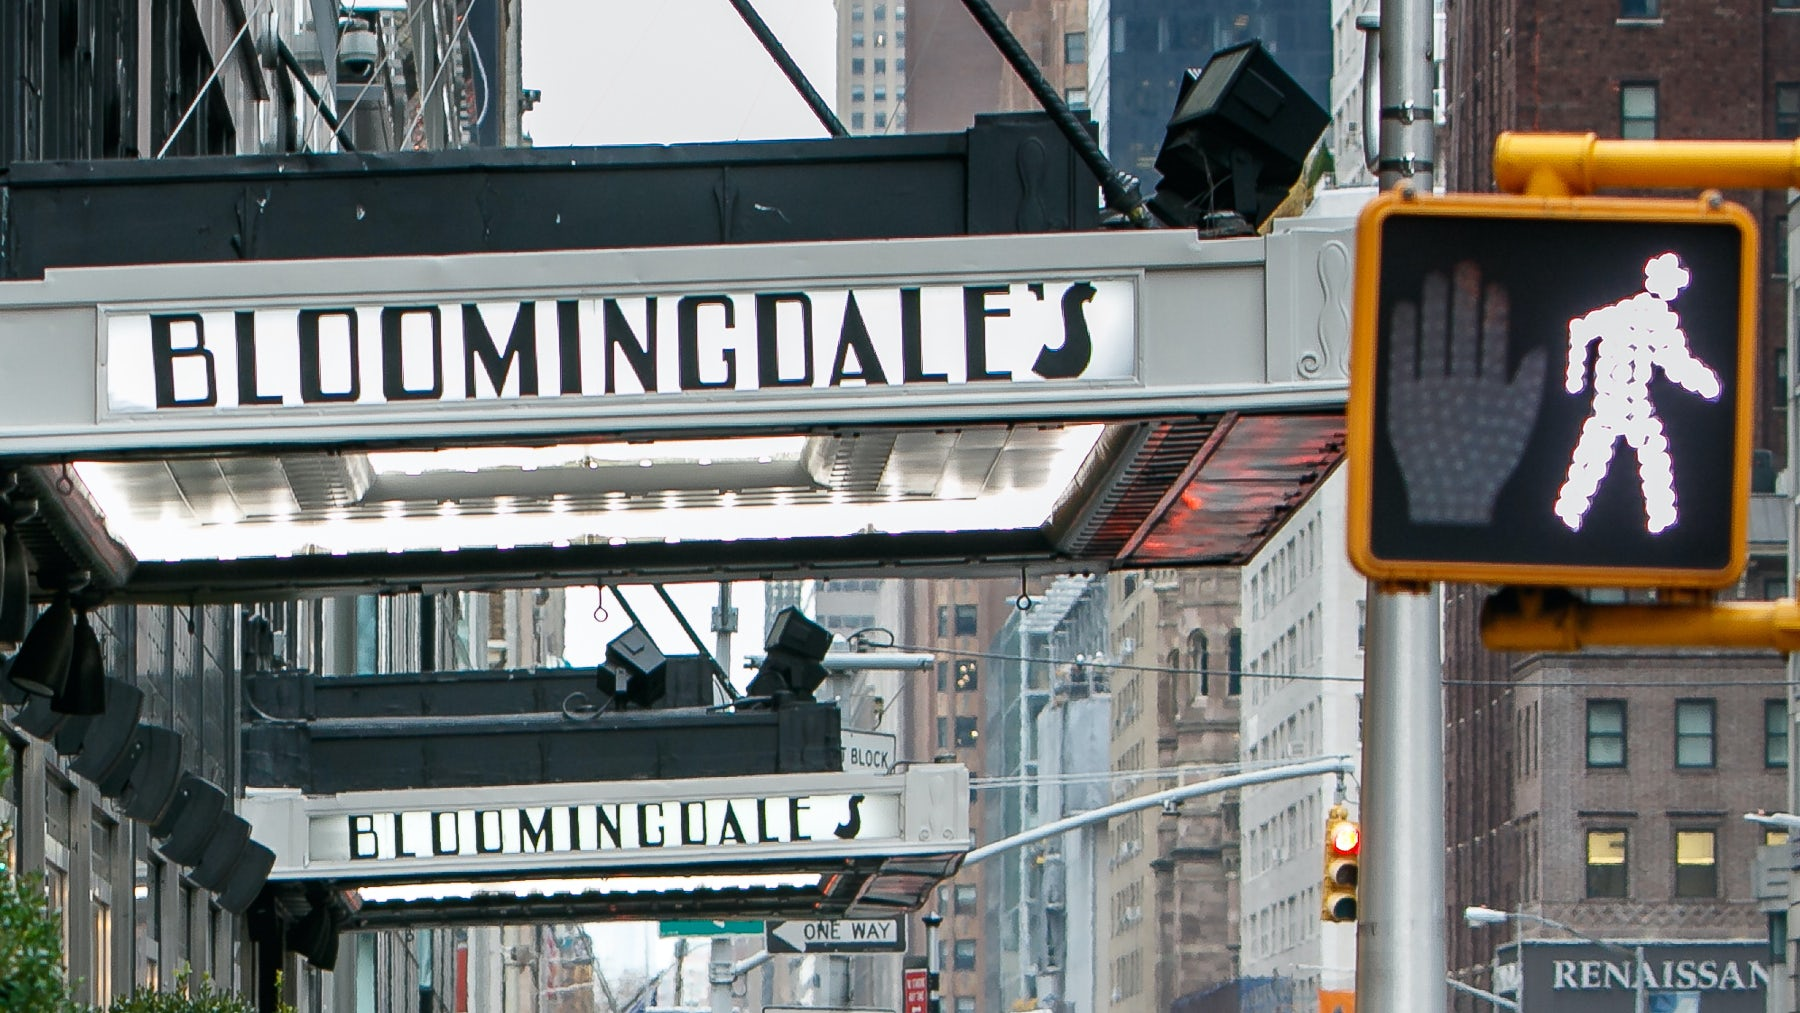 Bloomingdale's in New York | Source: Shutterstock